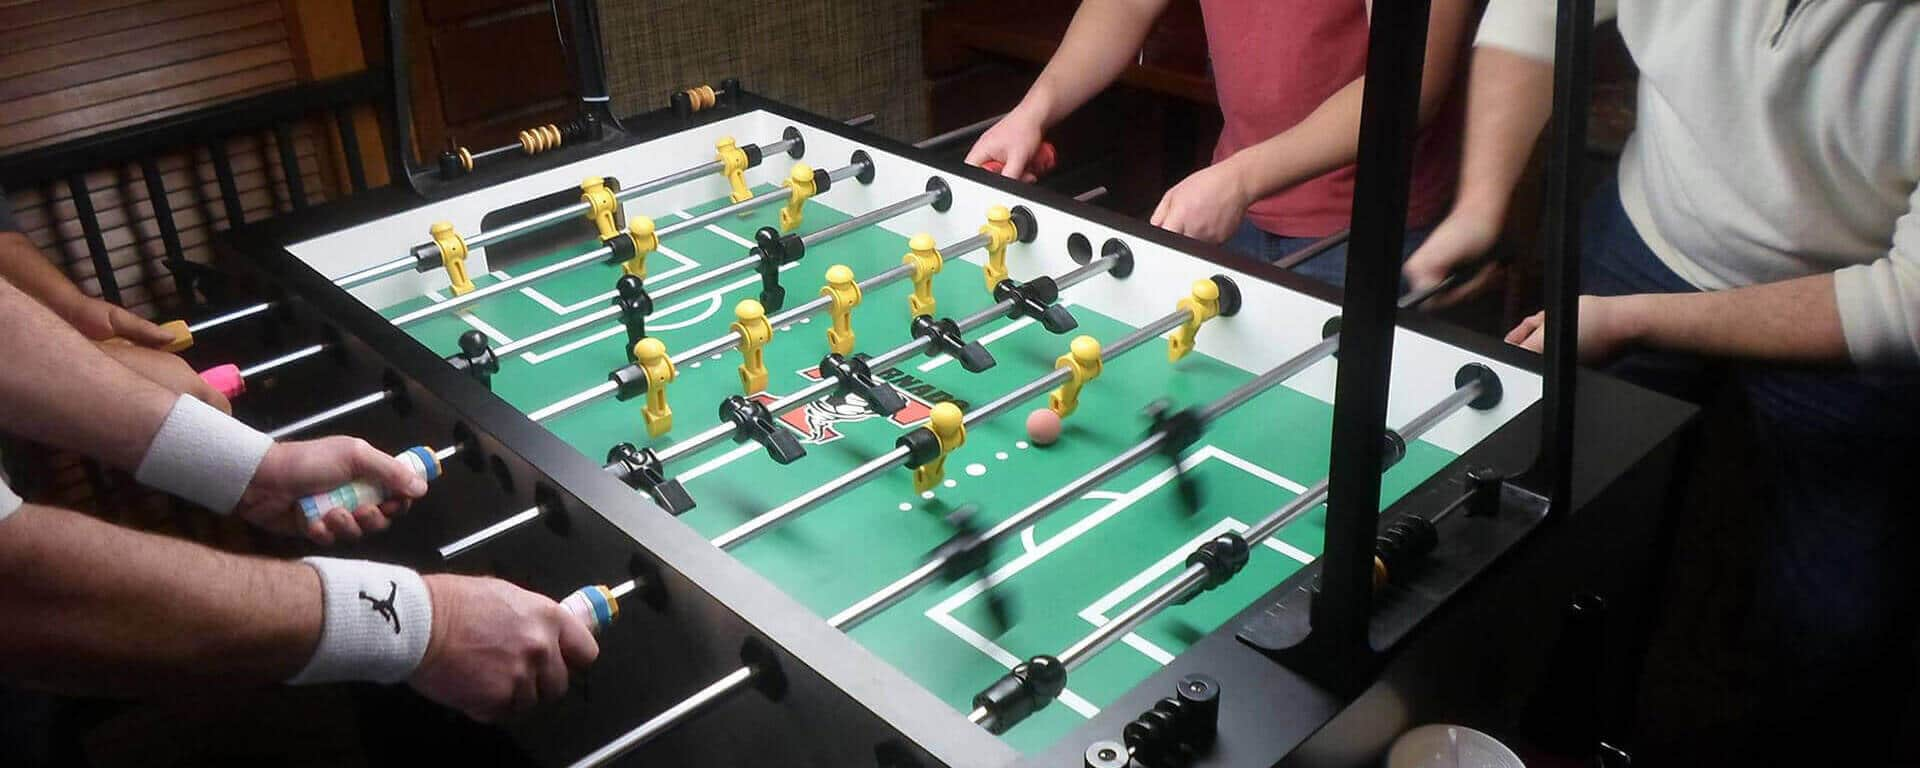 Foosball Rules: All You Need To Know